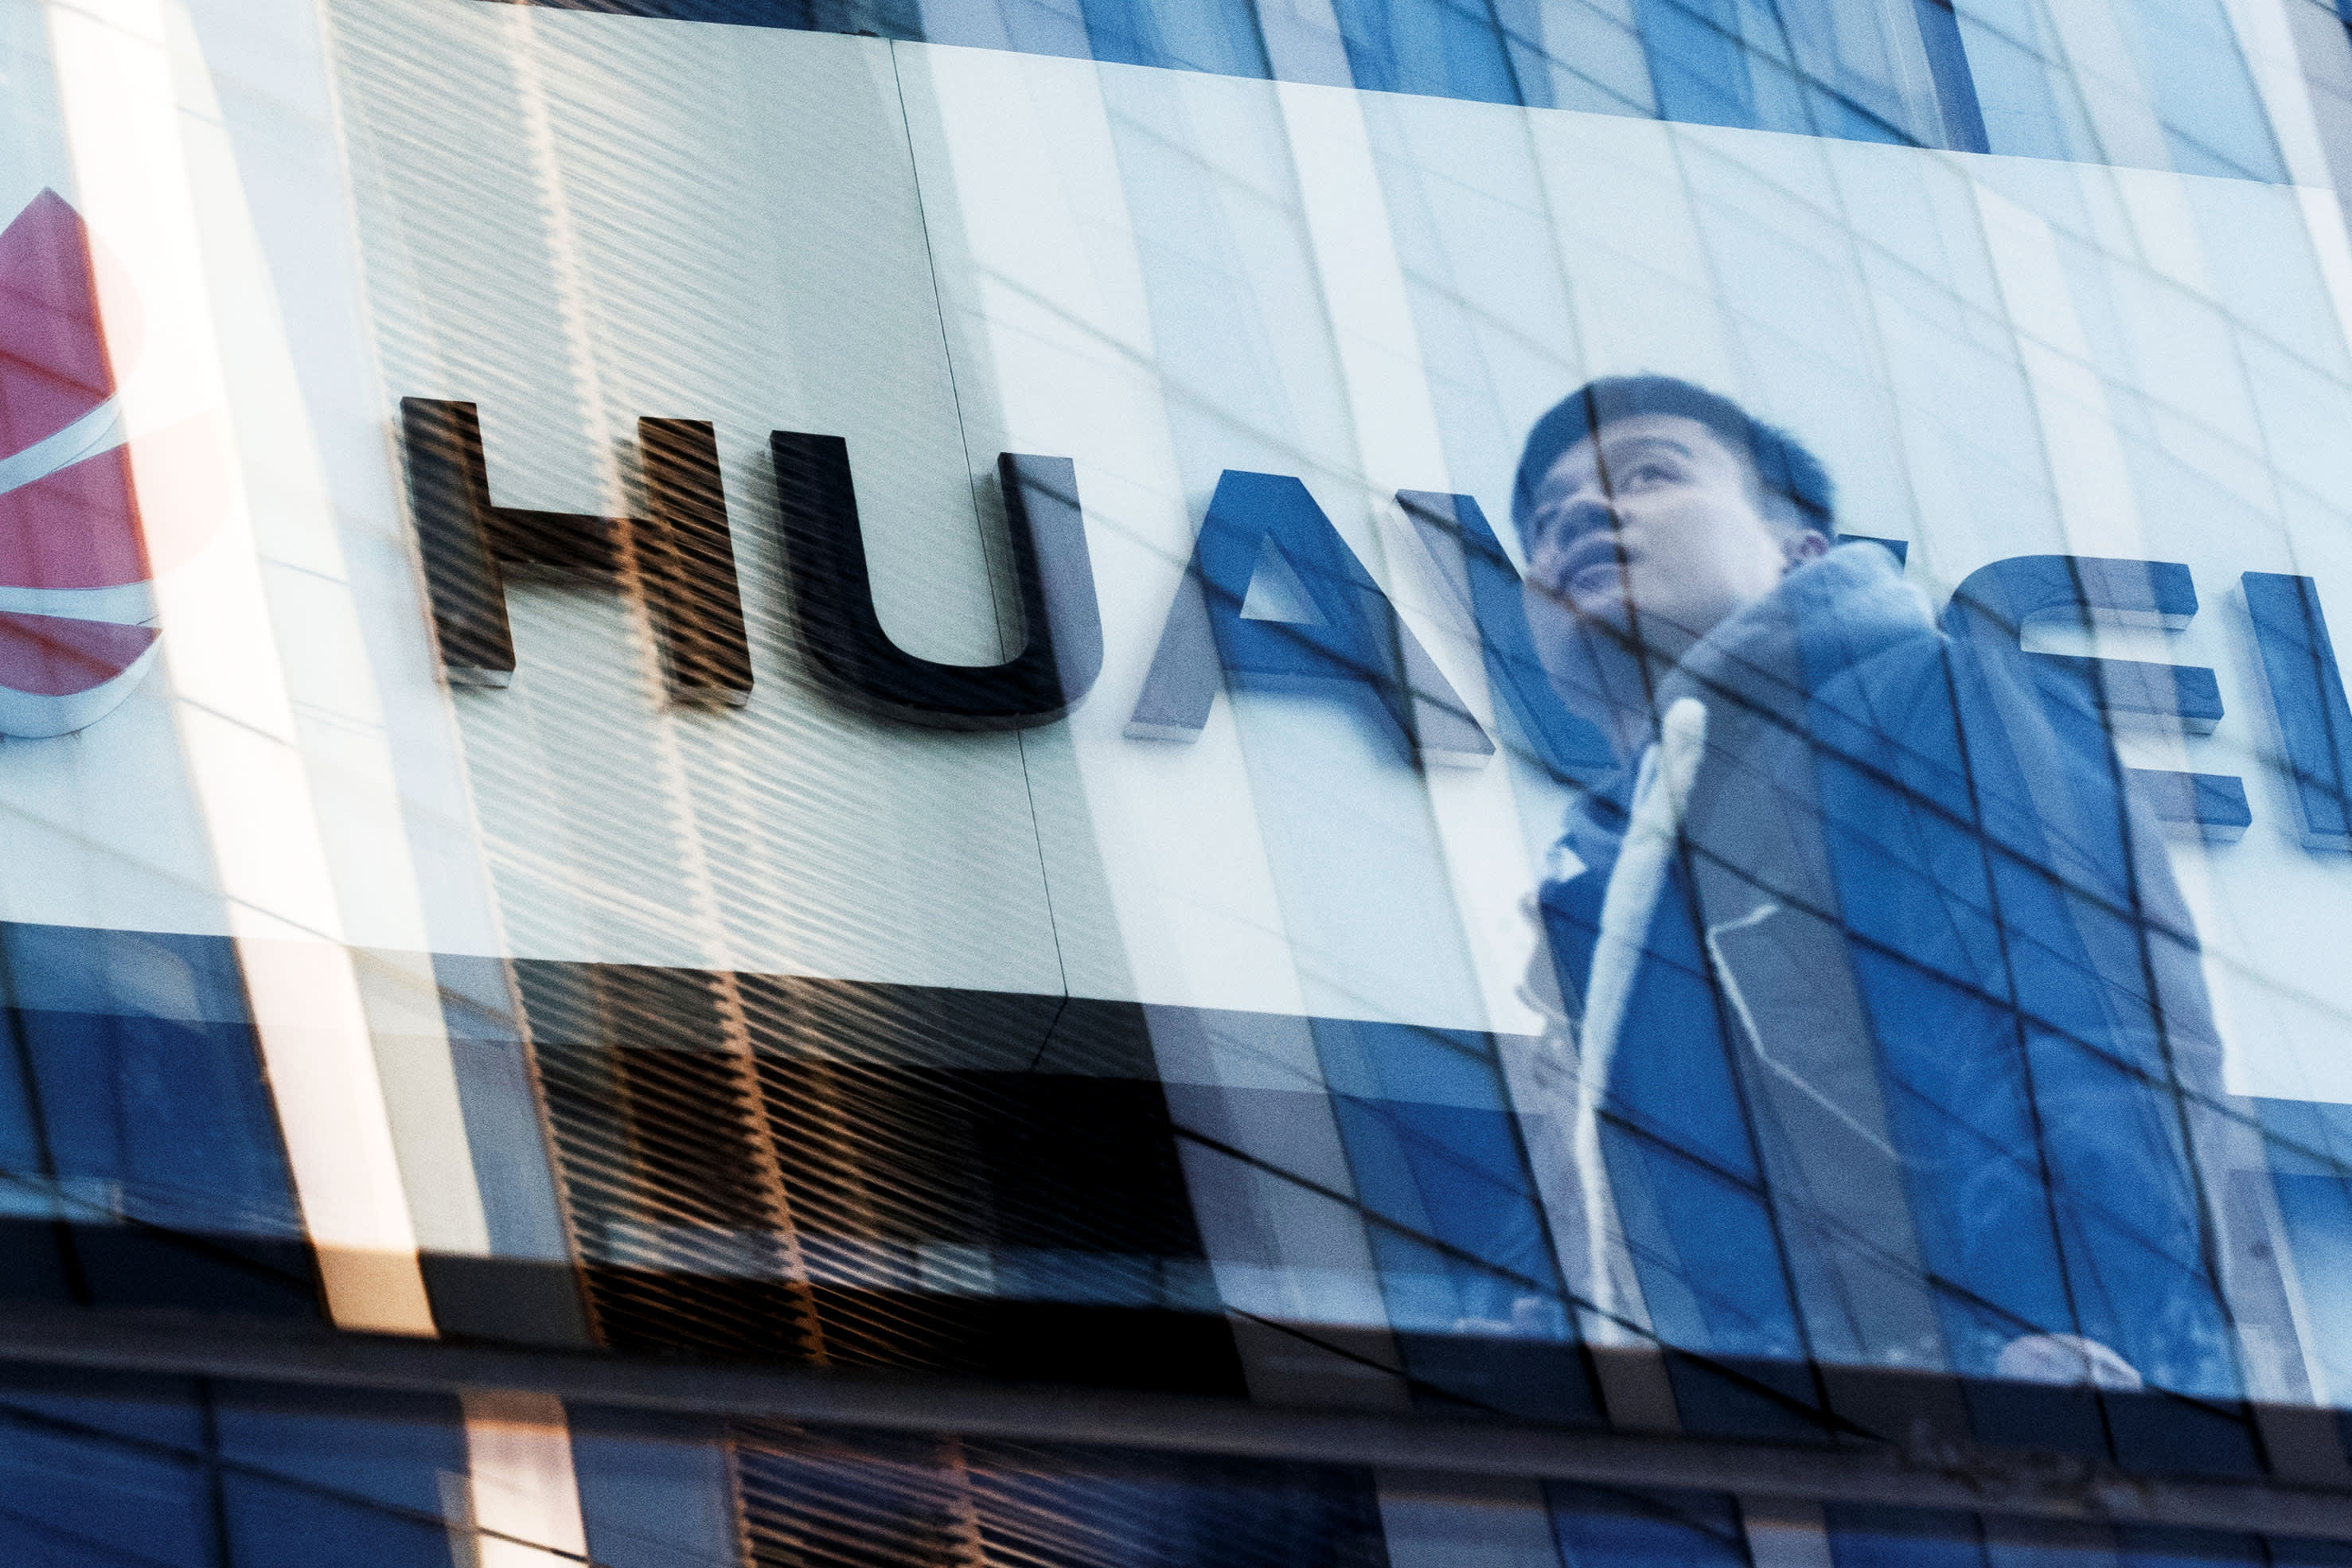 Chinese social media users are rallying behind Huawei. Some say they're switching from Apple